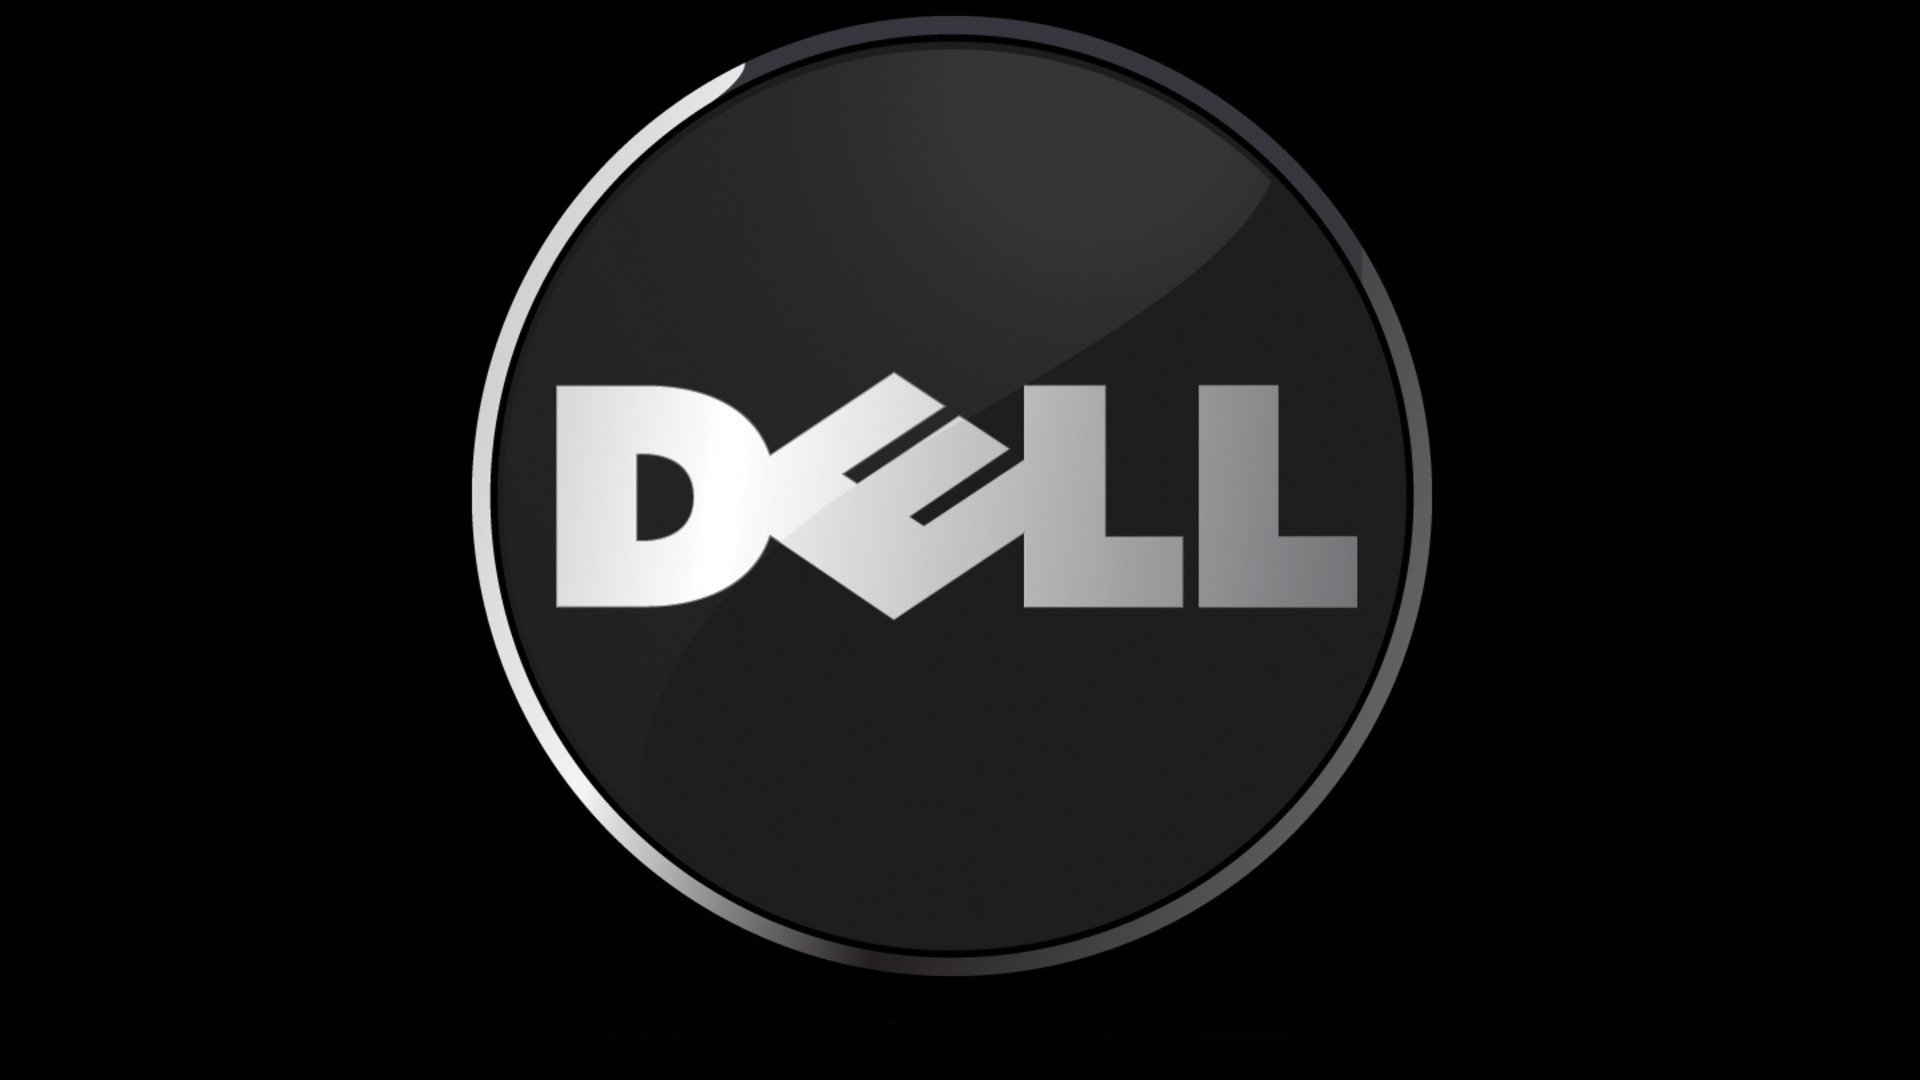 Dell Wallpaper 1920X1080 - WallpaperSafari